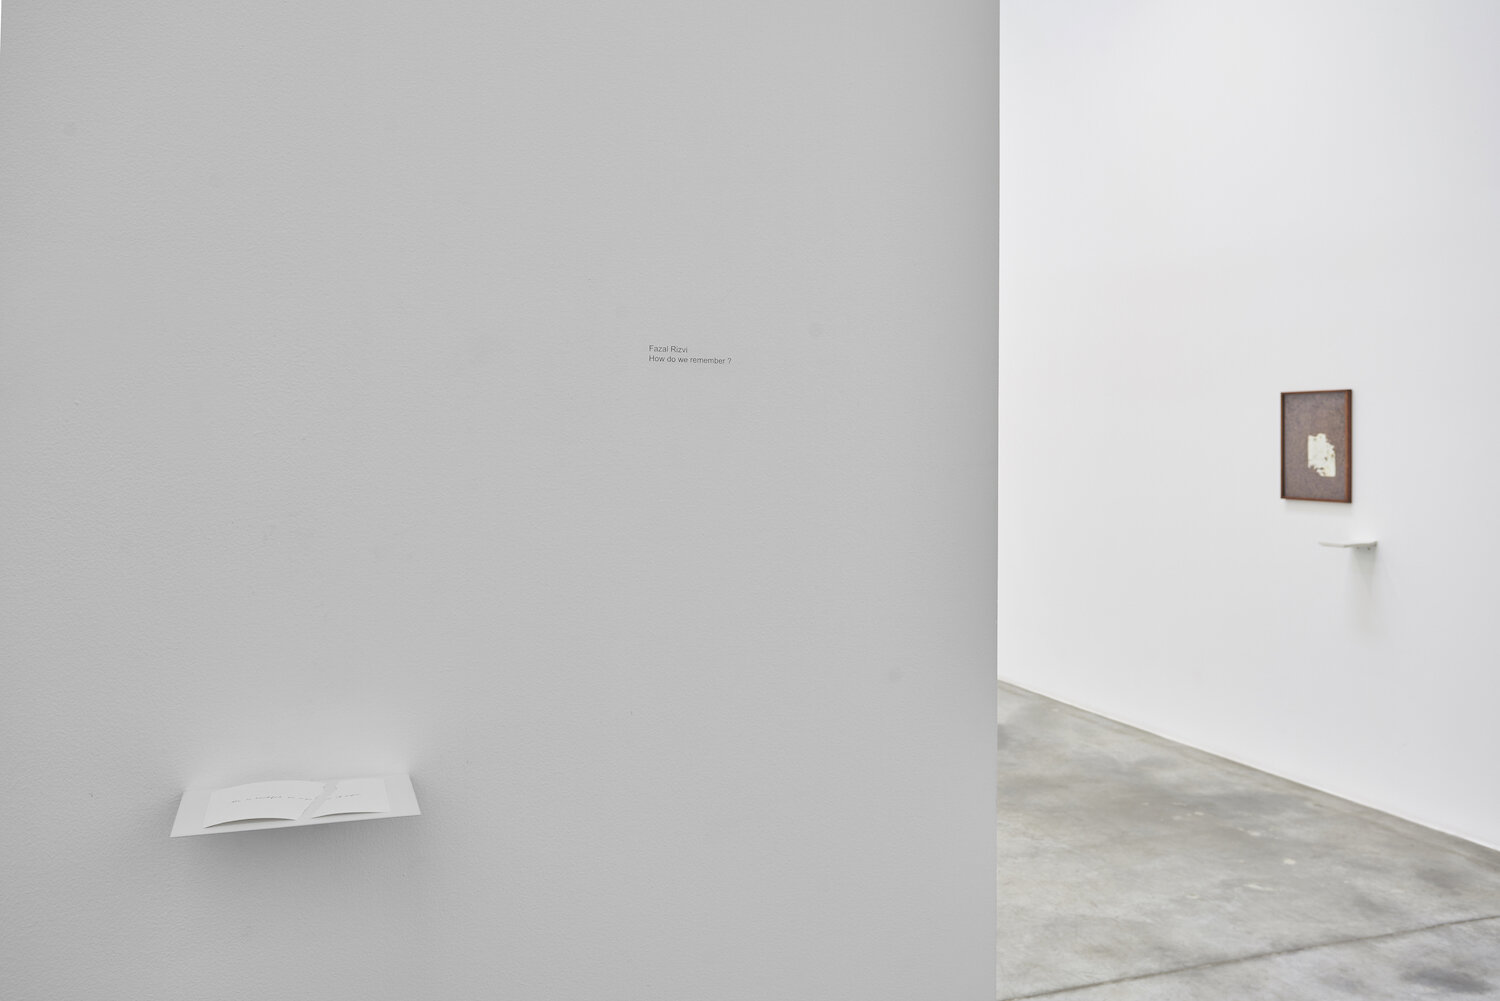 L-R  She is beautiful on a piece of paper, 2019, handwritten text on paper, metal shelf, dimensions variable  /  The Visit, 2019, archival print on canson infinity paper, offsetprint, metal shelf, 45.72 x 35.5 cm (frame) / 16.5 x 11.7 cm (metal shelf), Edition 1/4